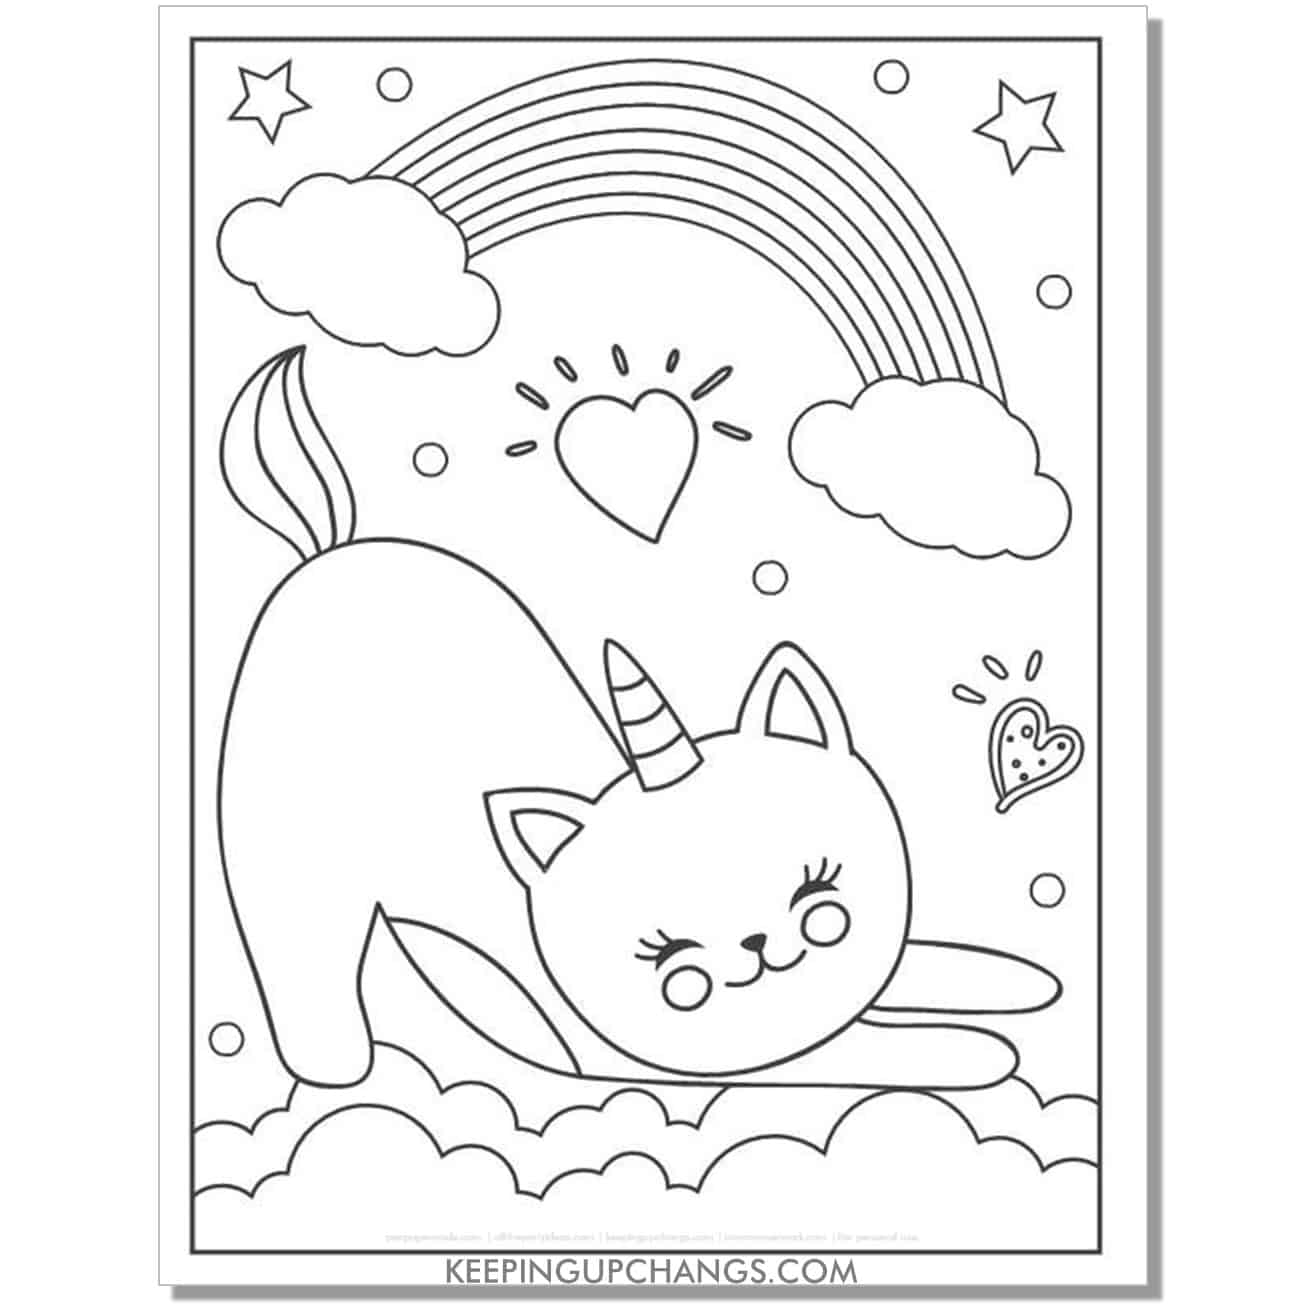 cat unicorn hearts and rainbows coloring page.